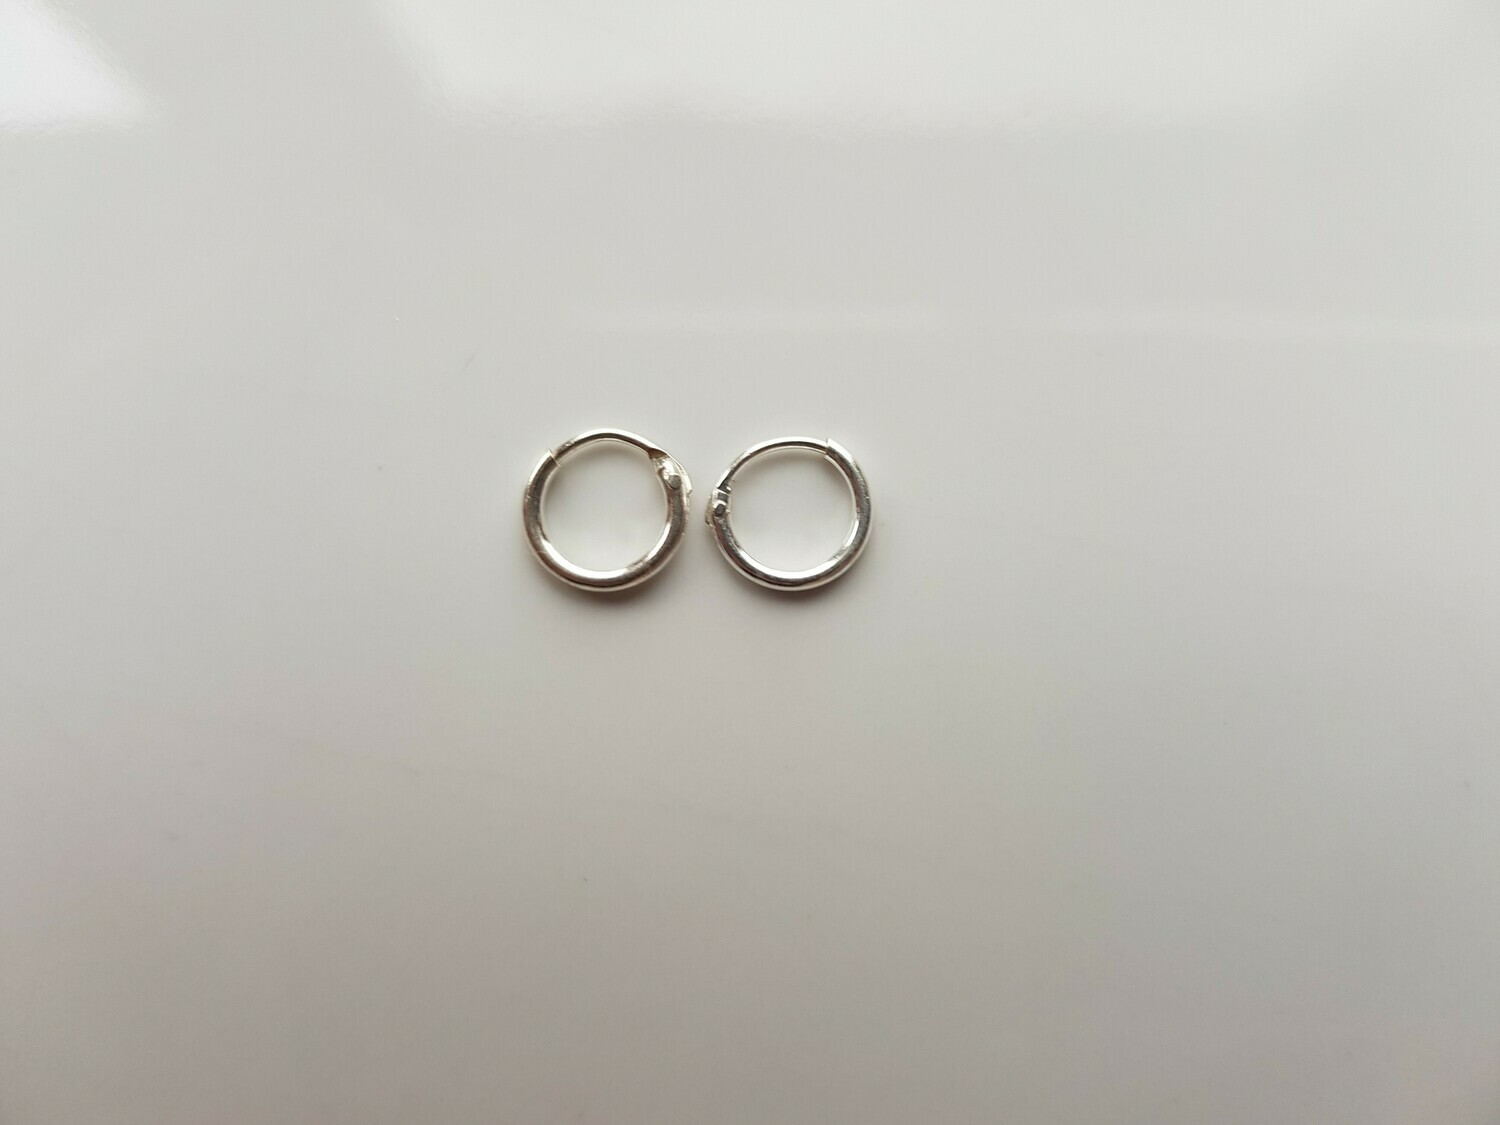 Oorringetjes 925 sterling zilver 6 mm